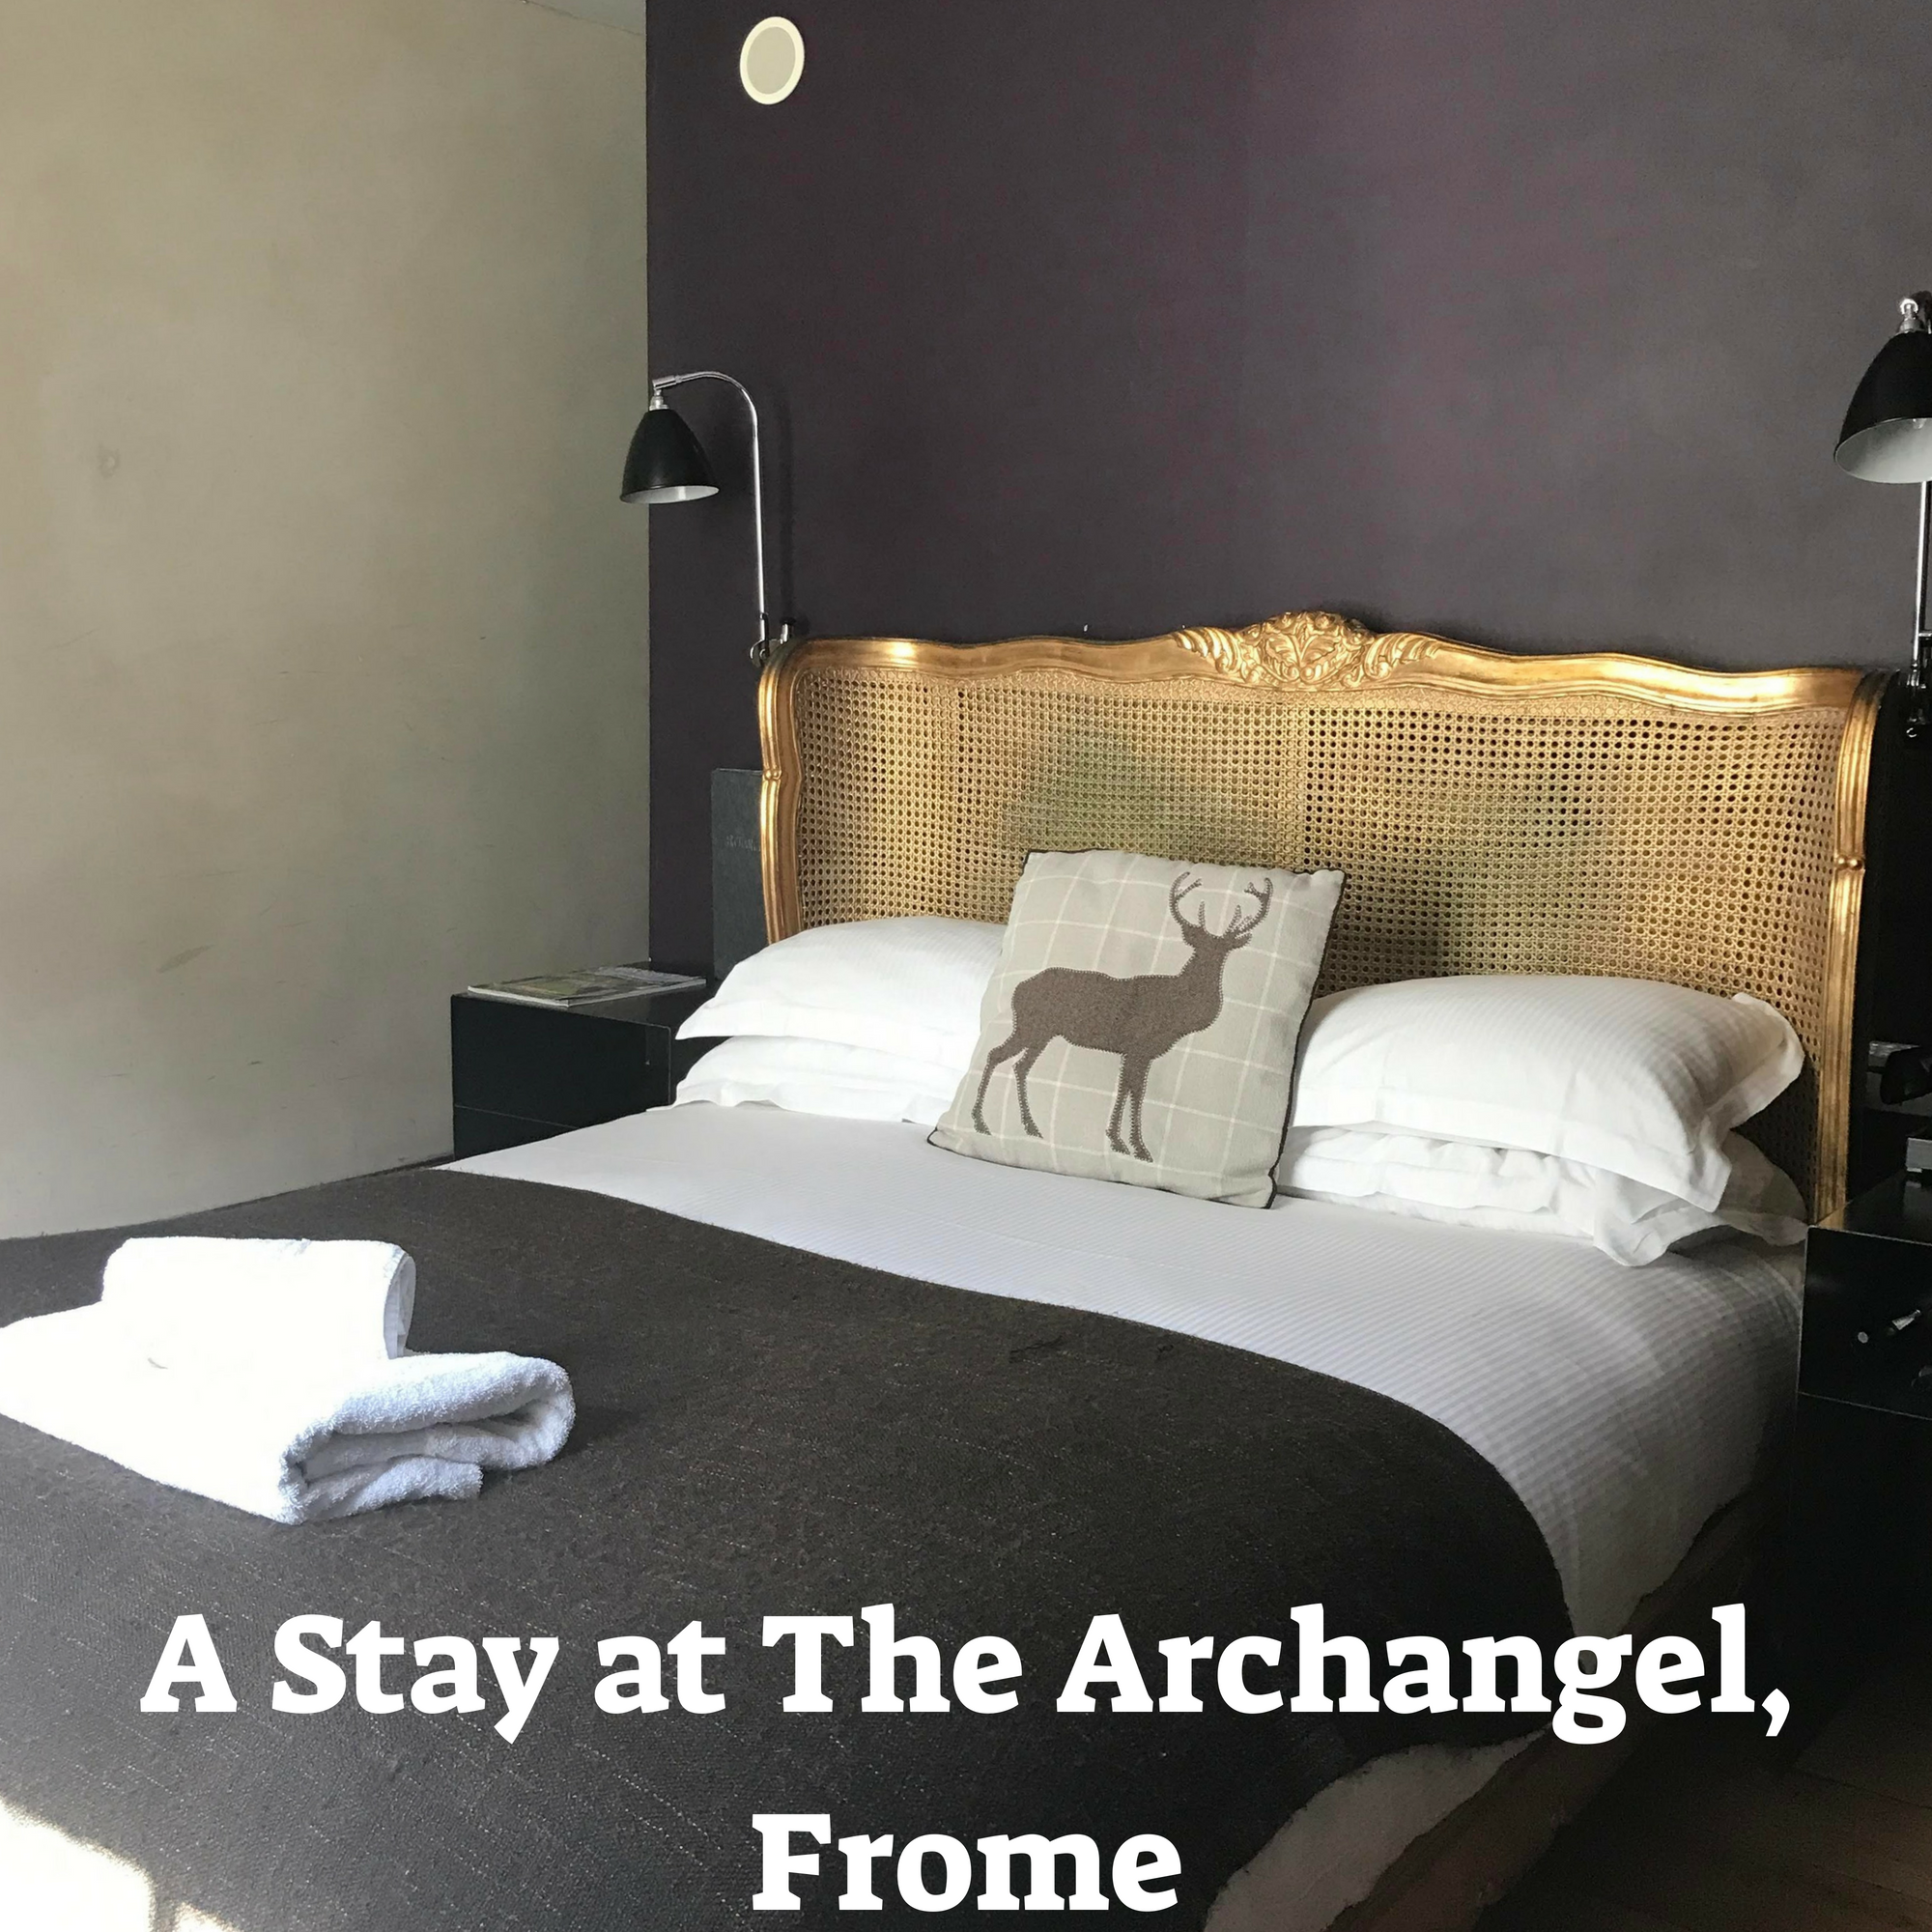 The Archangel, Frome